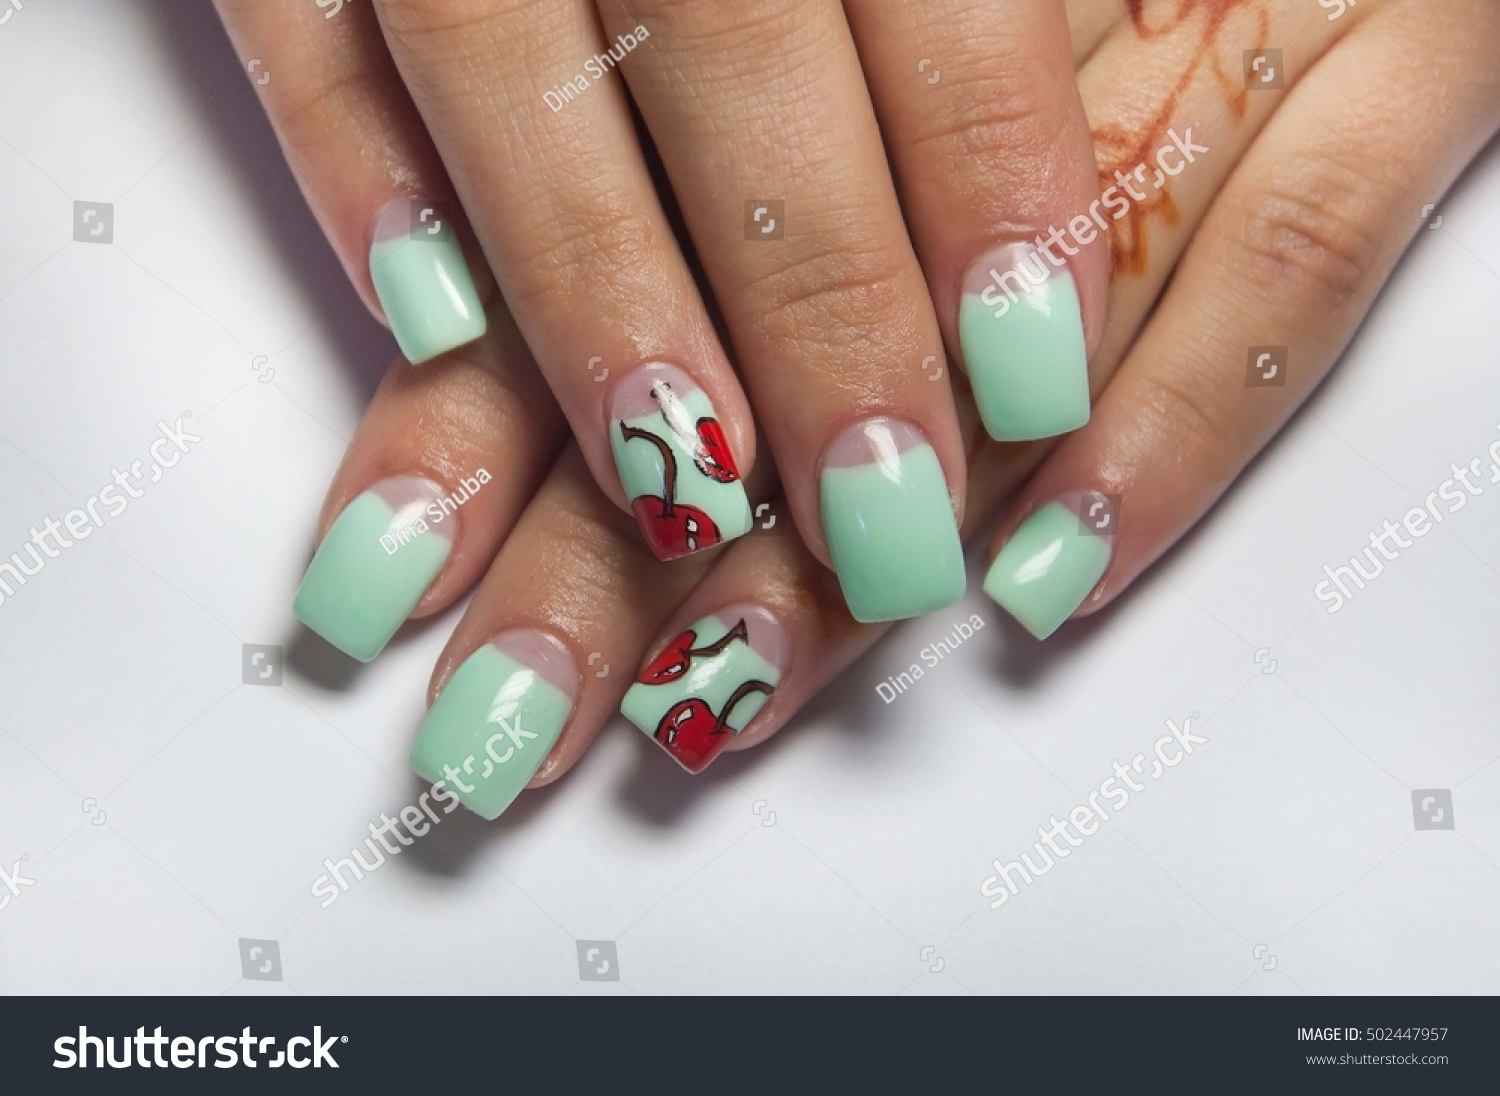 Summer Mint Manicure Cherries On Ring Stock Photo (Royalty Free ...